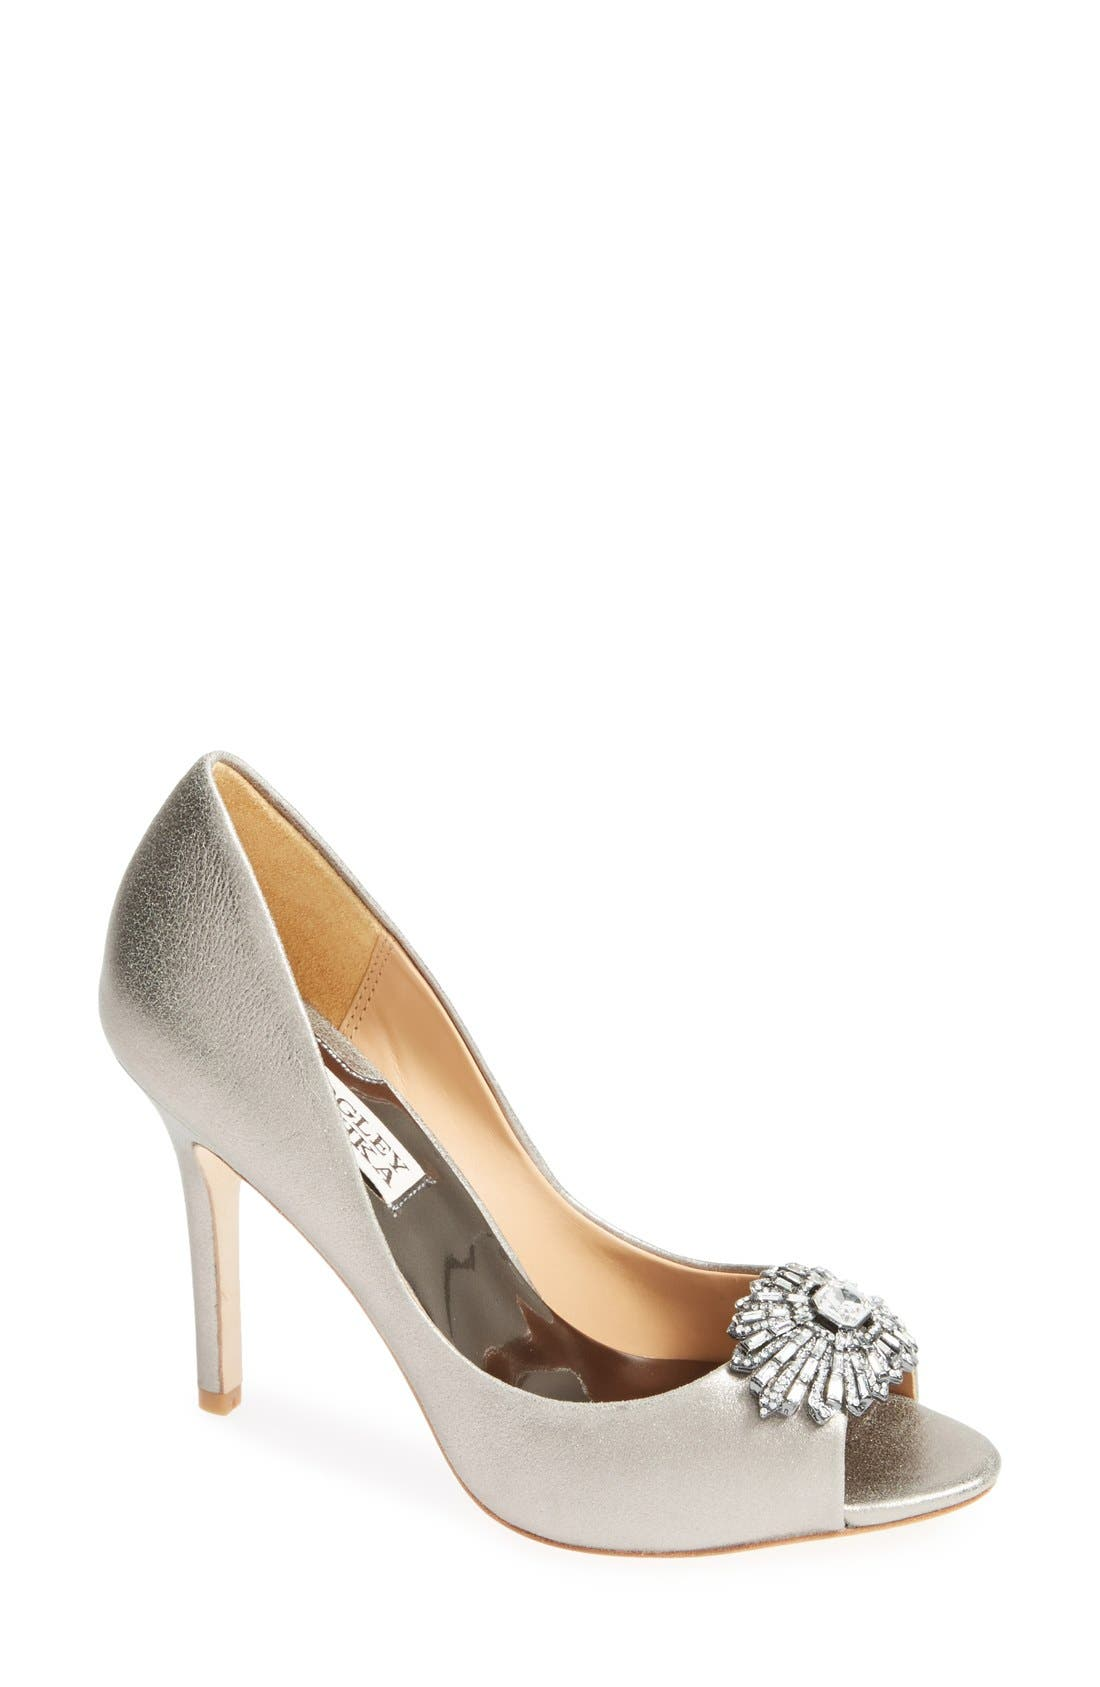 Alternate Image 1 Selected - Badgley Mischka 'Hollie' Pump (Women)